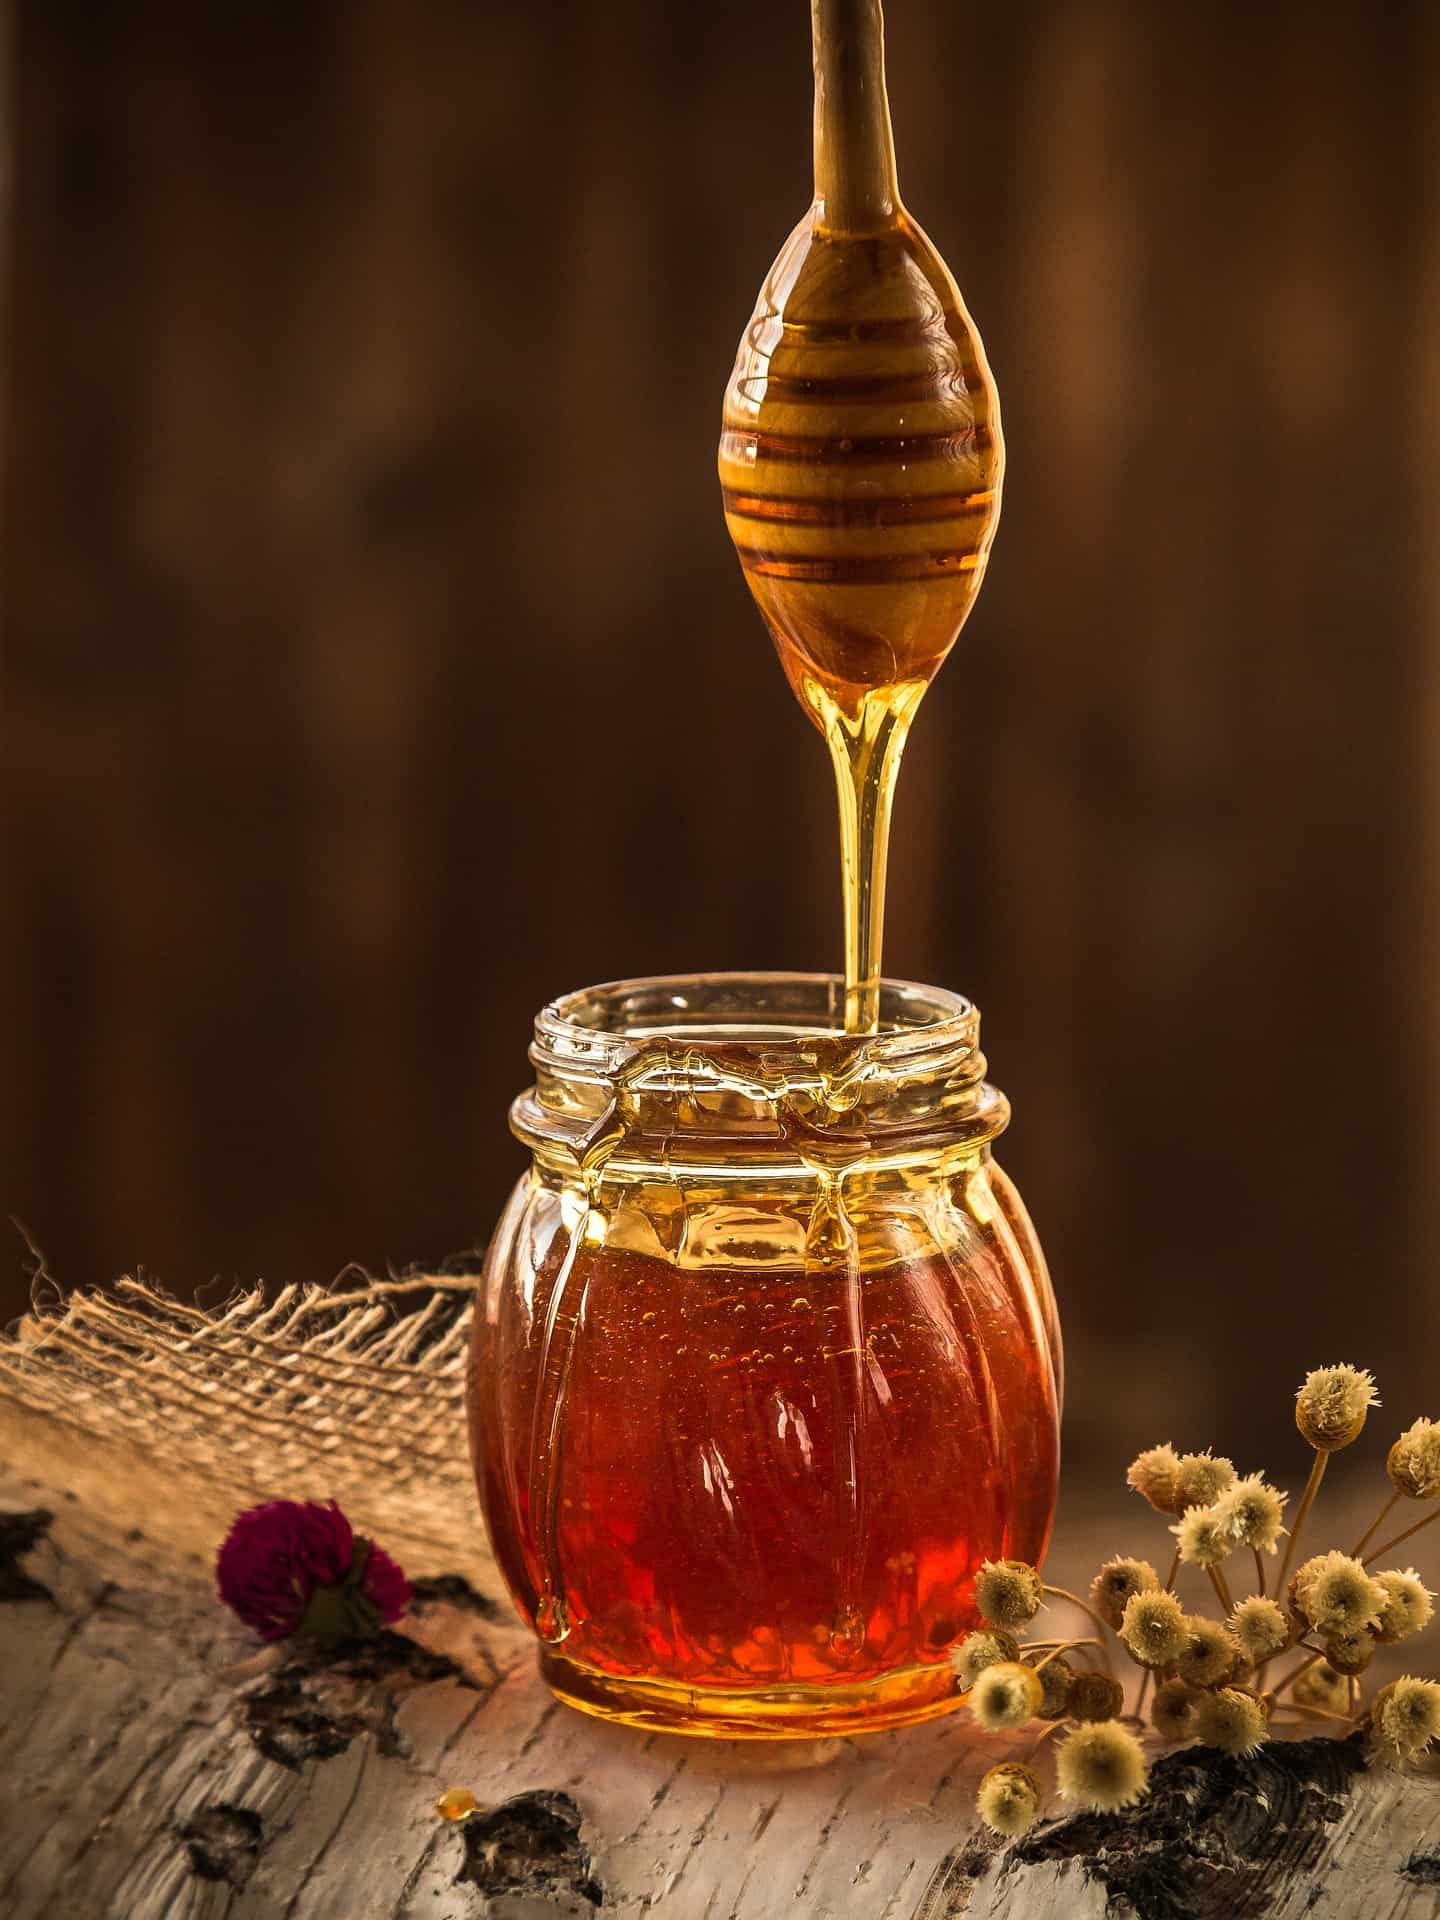 Facts about Egypt, honey